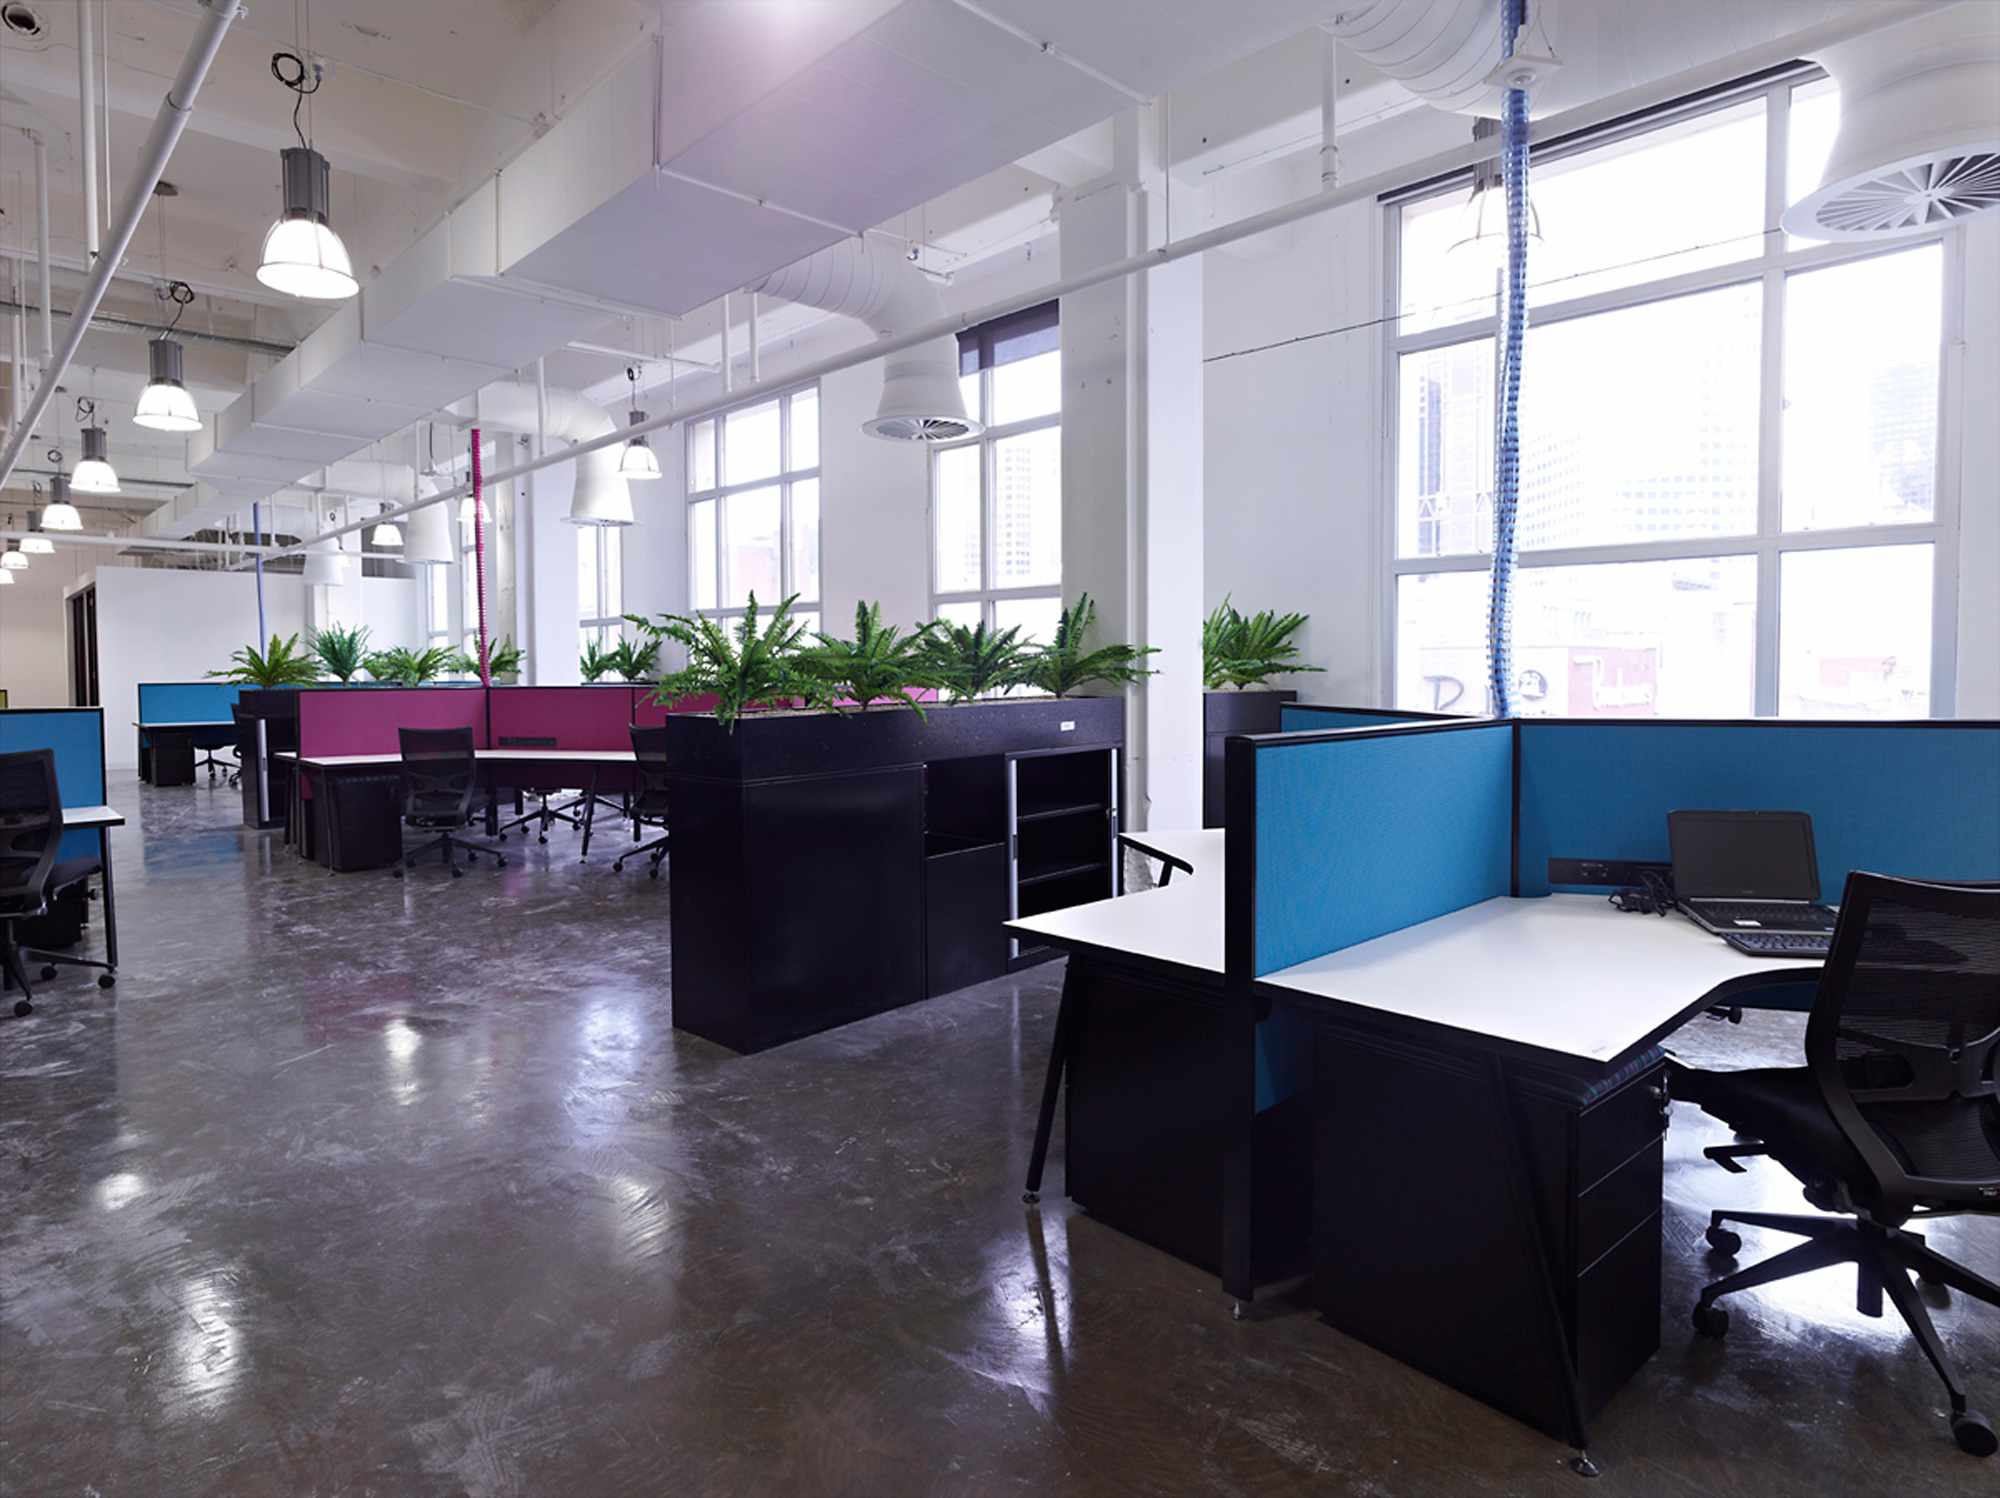 office interior pictures. Award Winning Office Interior Design | Bicycle Network Marketing Pictures